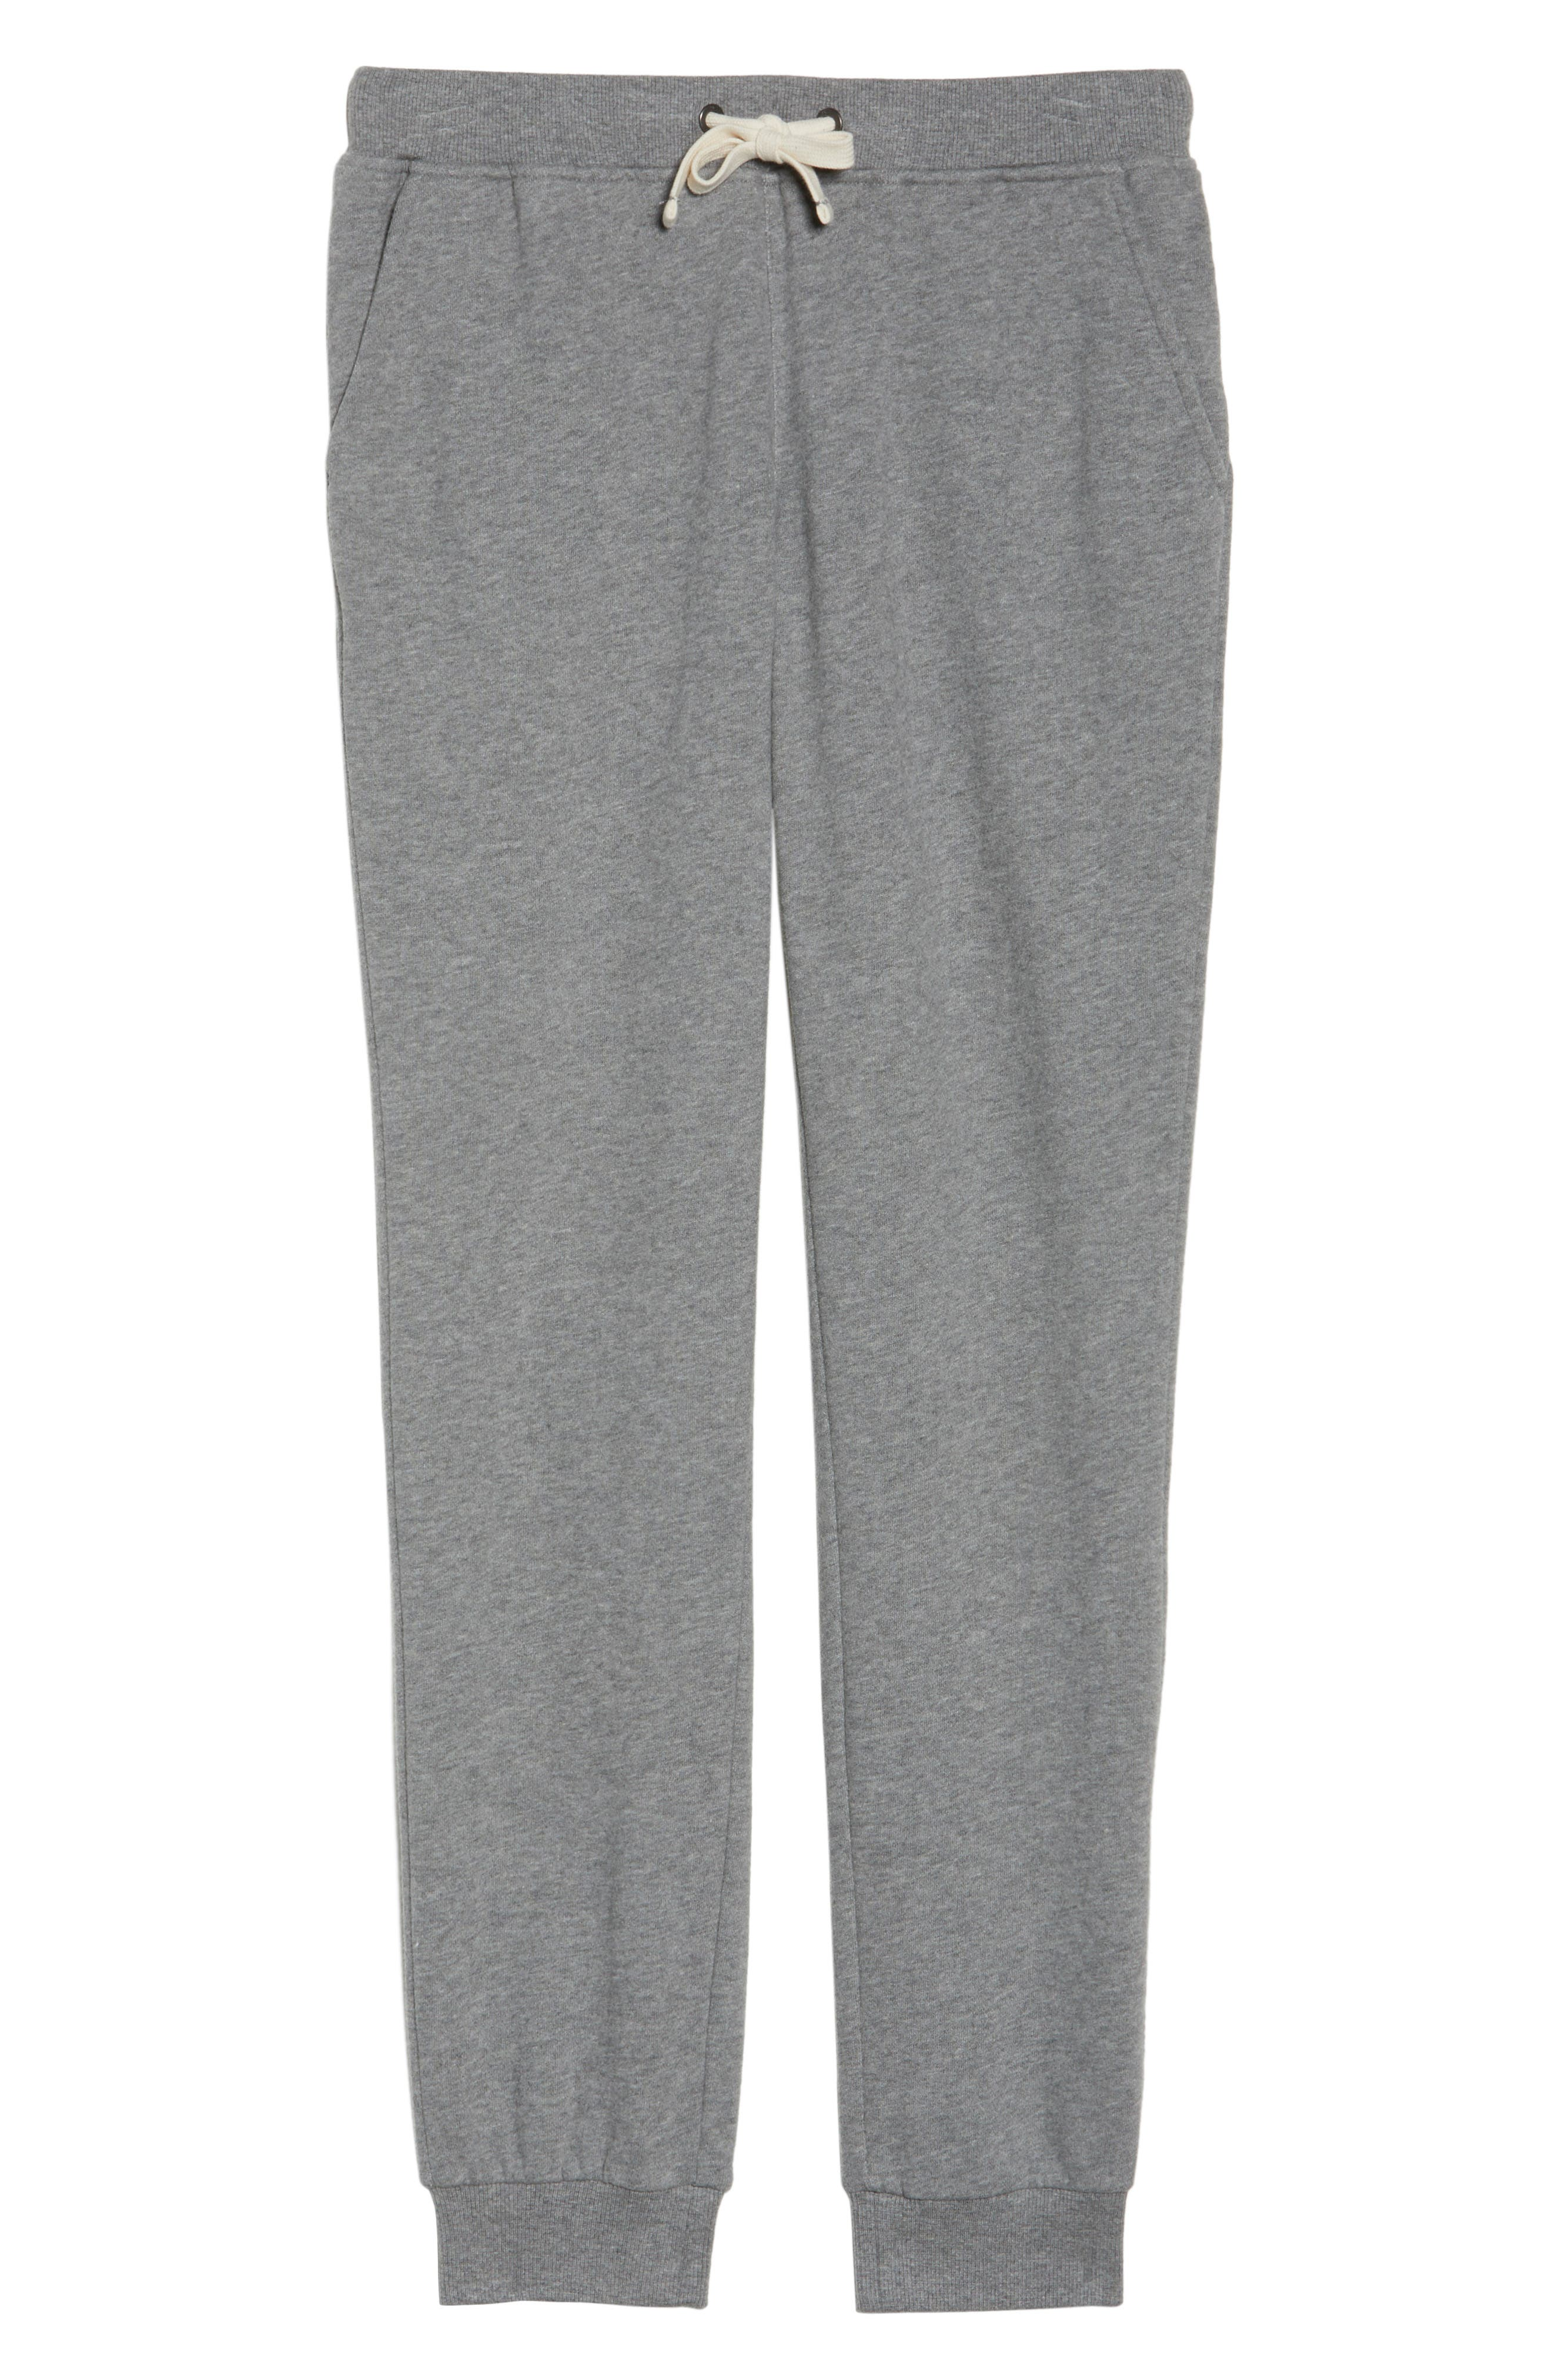 Babe Jogger Pants,                             Alternate thumbnail 4, color,                             Heather Grey